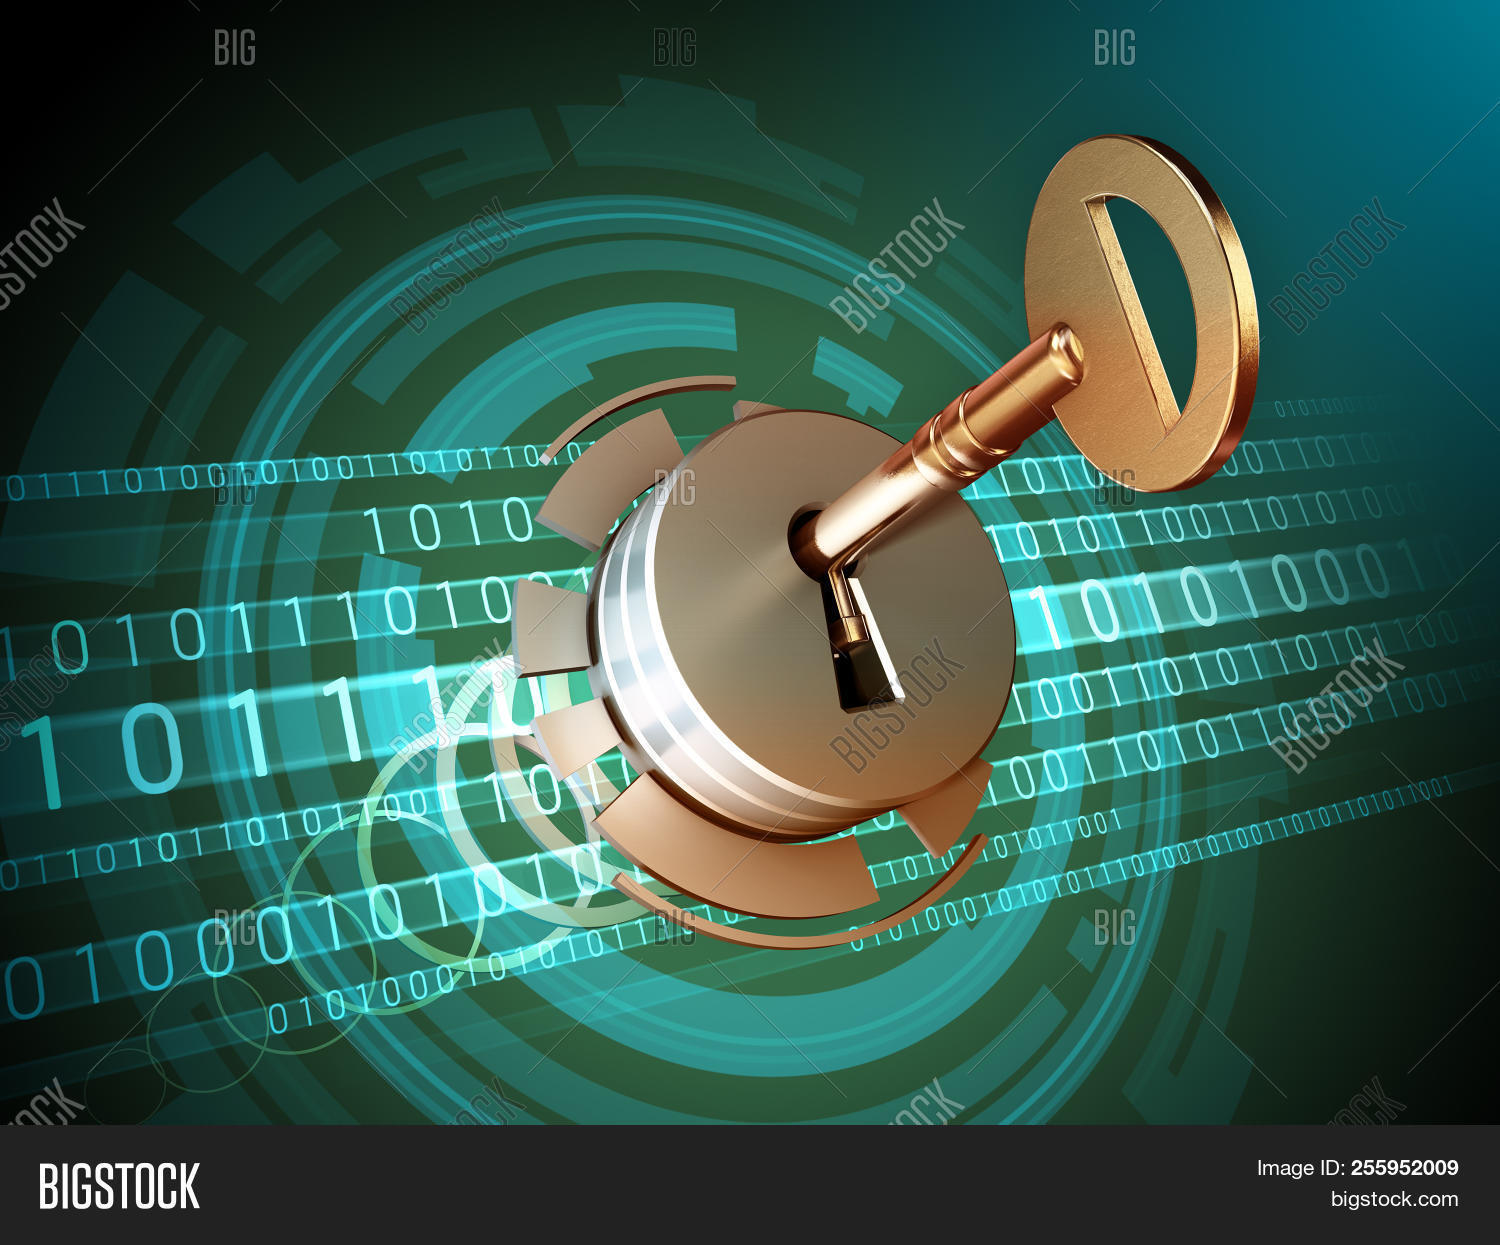 3d,access,anti,authorization,authorized,binary,bit,blue,code,computer,concept,connection,content,credentials,cyber,cyberspace,data,digital,gold,guard,illustration,internet,key,keyhole,lock,mechanism,metal,network,online,open,padlock,password,privacy,protect,protection,rendering,rotating,safe,safety,secure,security,sensitive,shield,shiny,software,stream,system,technology,unlock,web